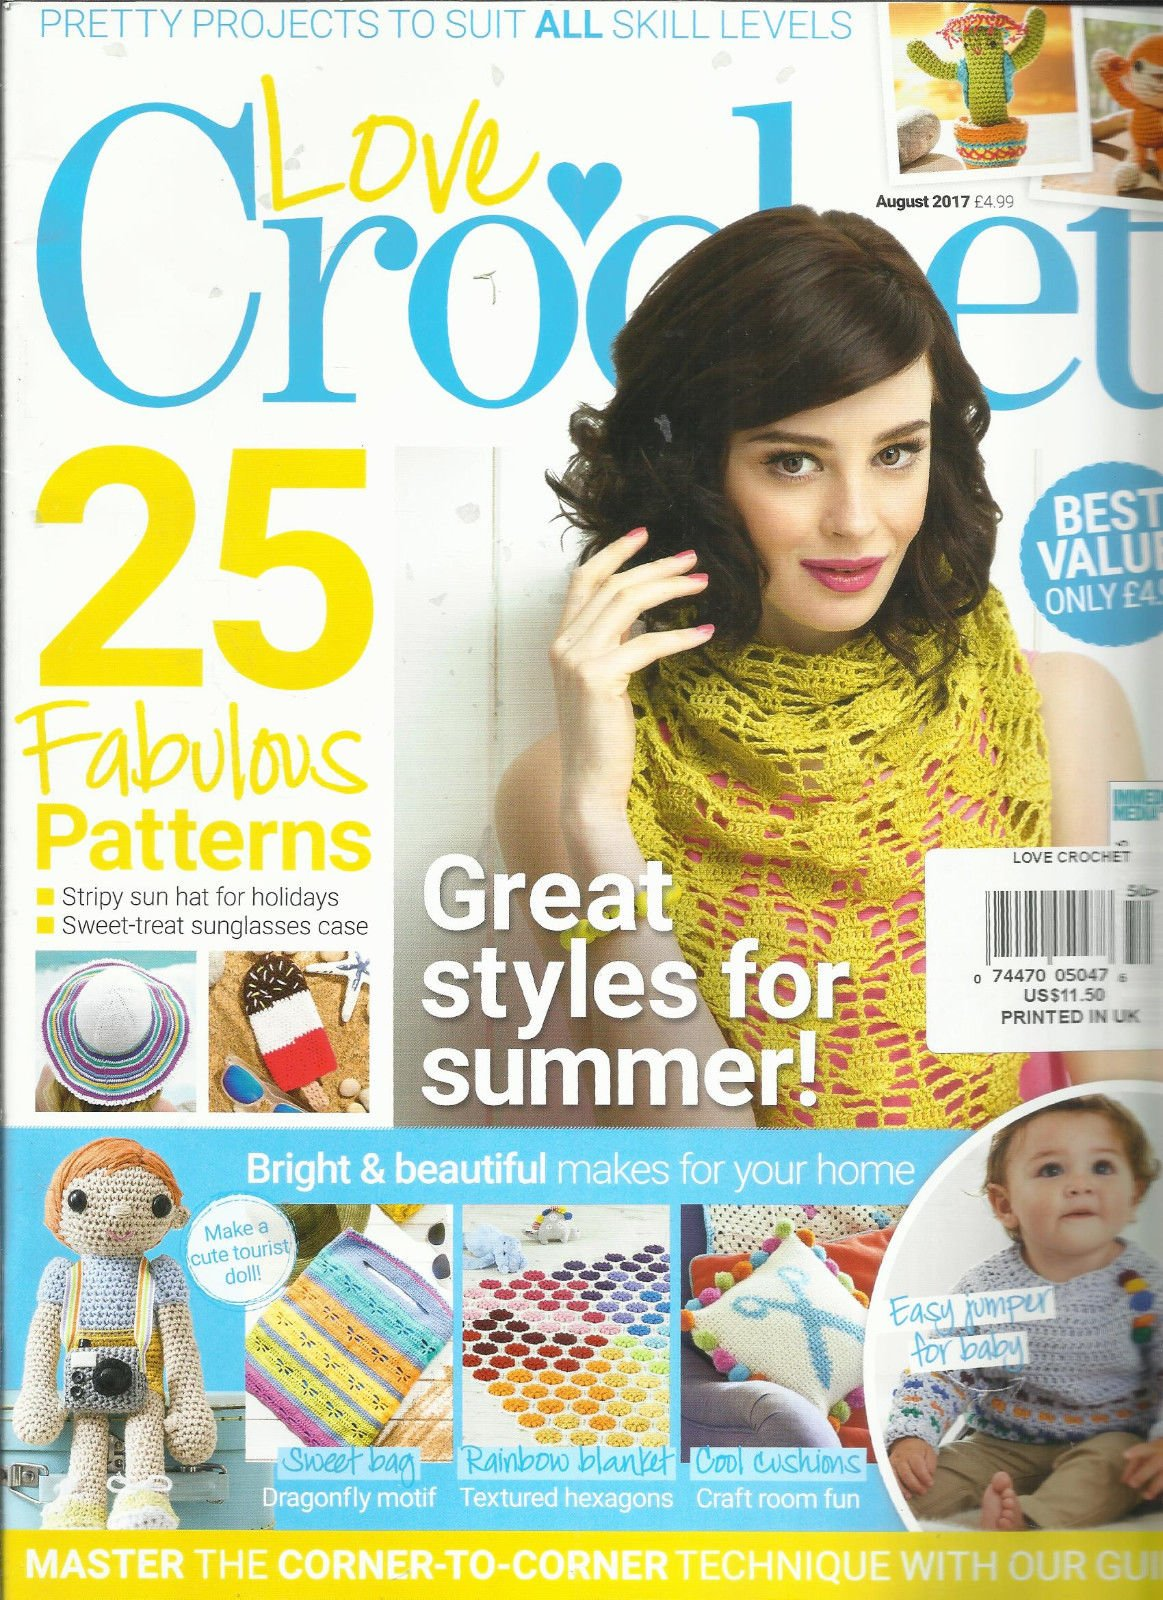 LOVE CROCHET MAGAZINE, AUGUST, 2017 FREE GIFTS OR INSERTS ARE NOT INCLUDED.